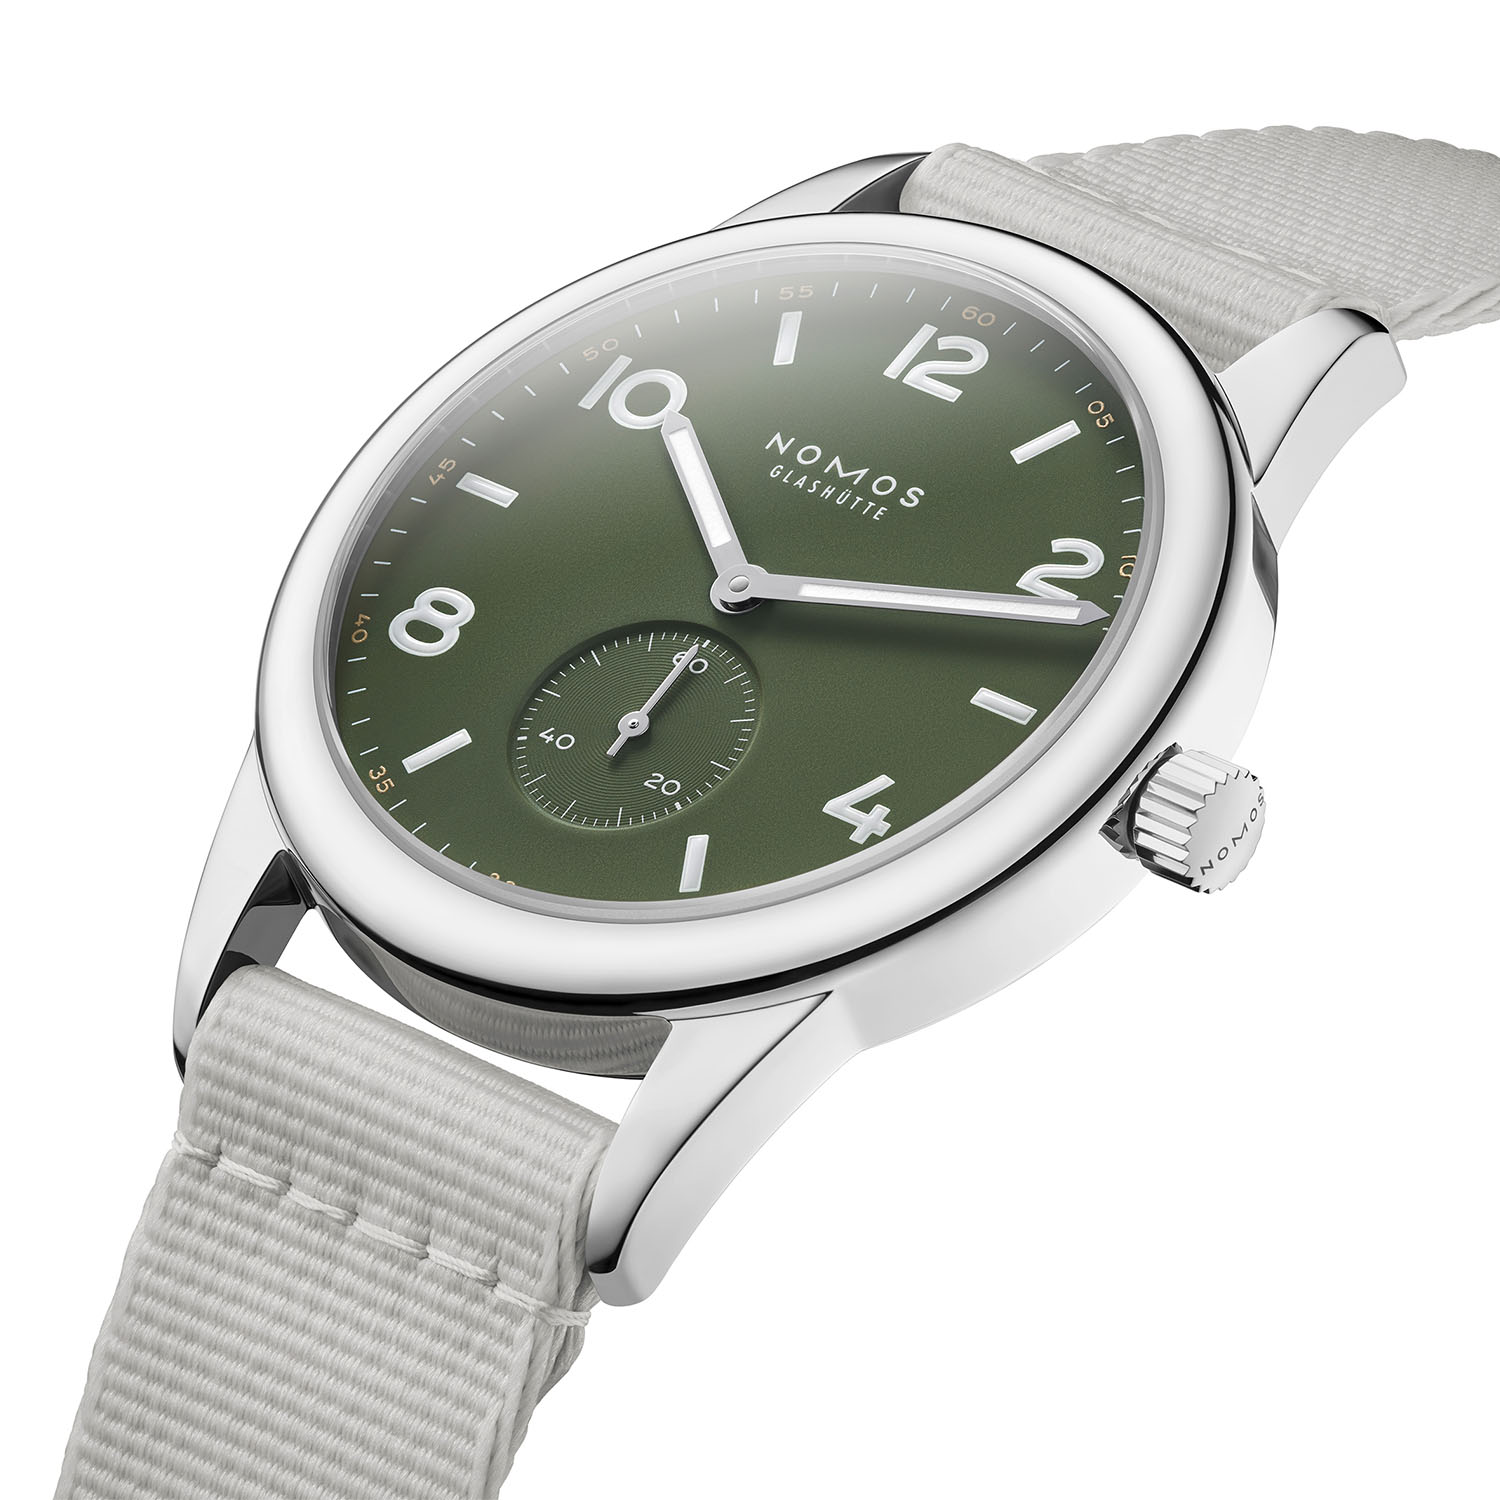 Nomos Club Automatic 175th anniversary limited editions - 10